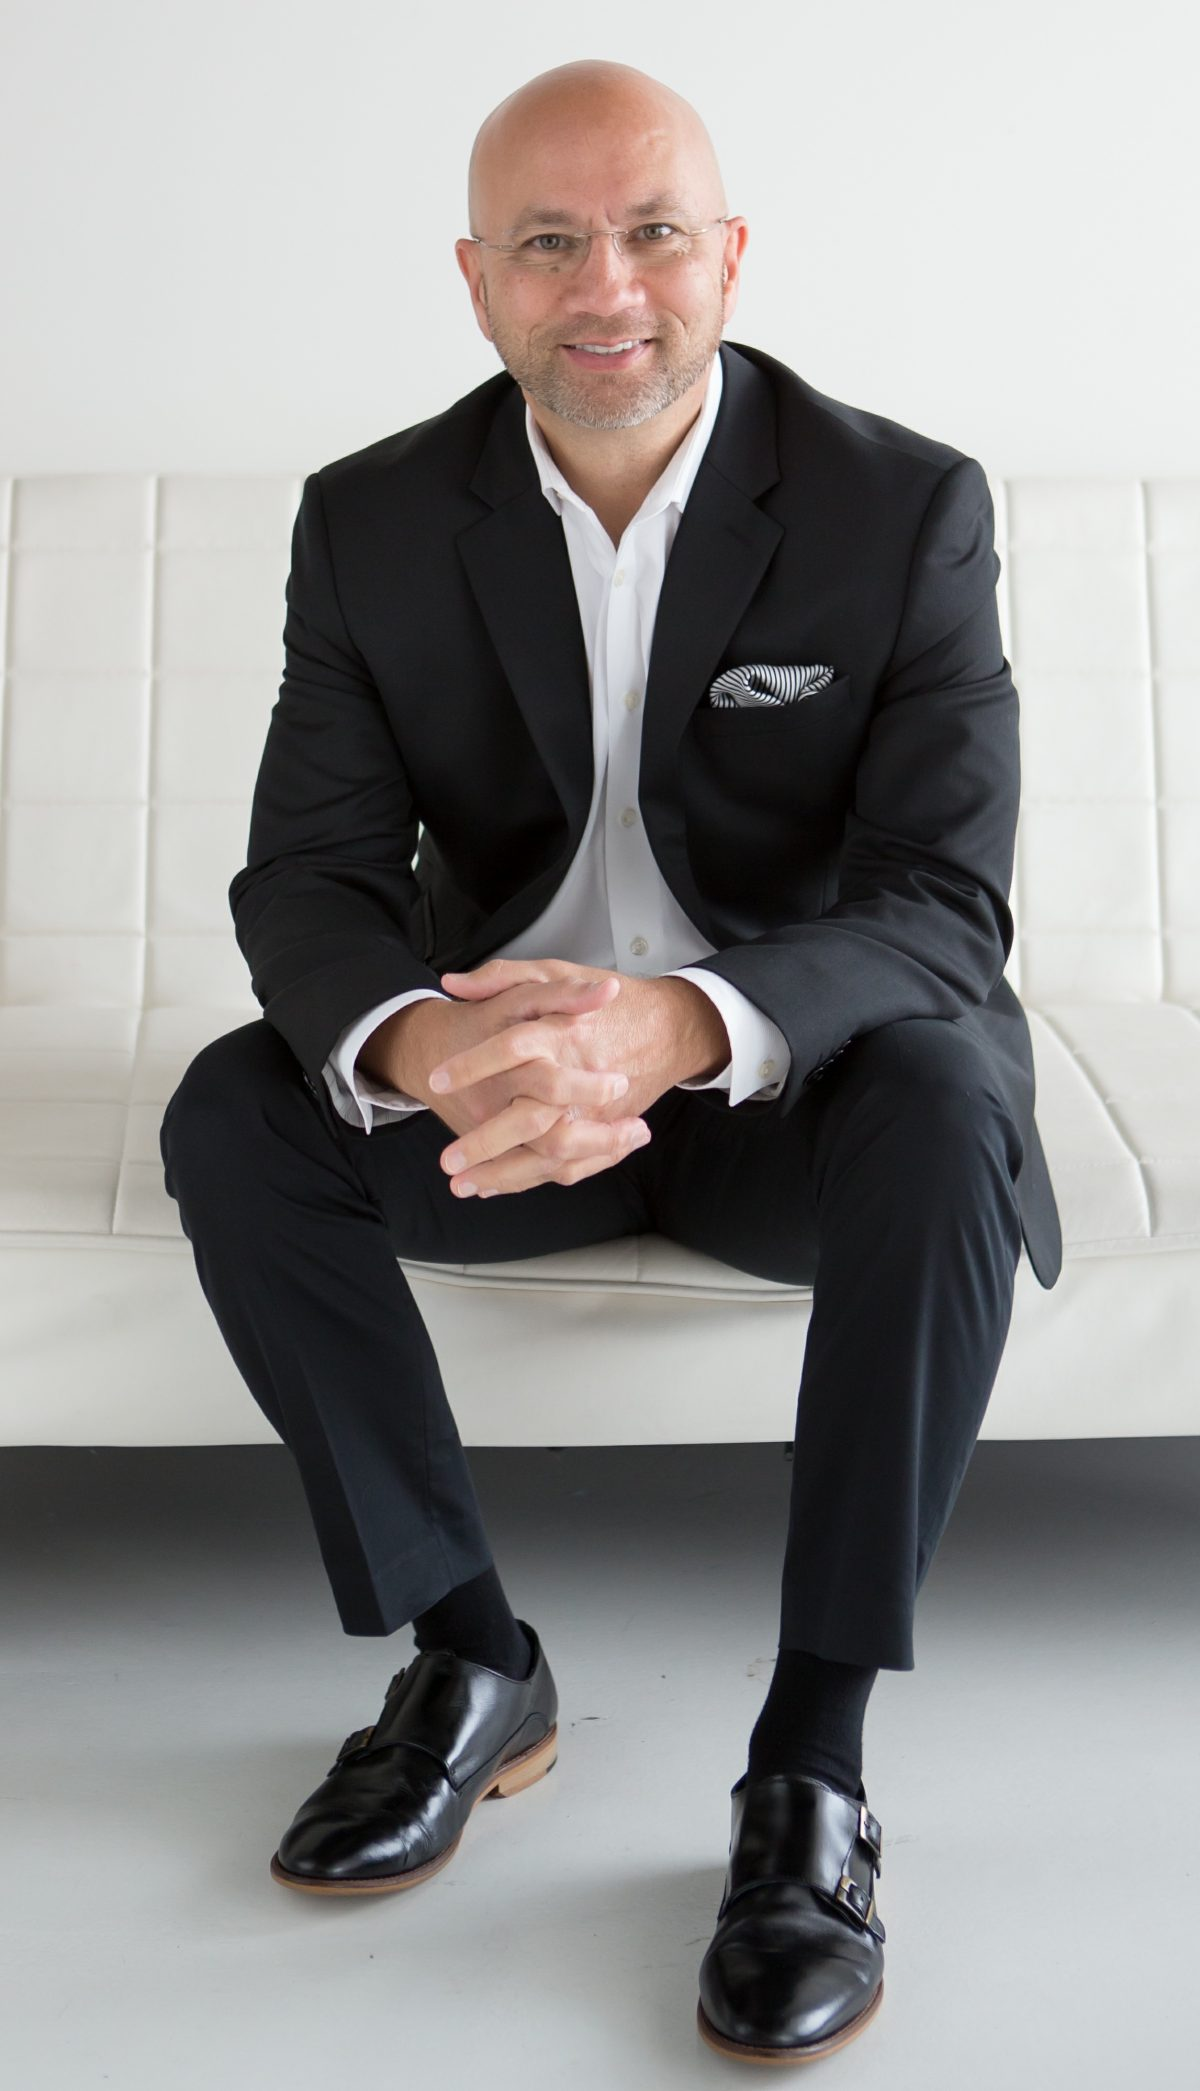 Kevin Arvin, co-partner of e-footprints, a leadership coaching firm.